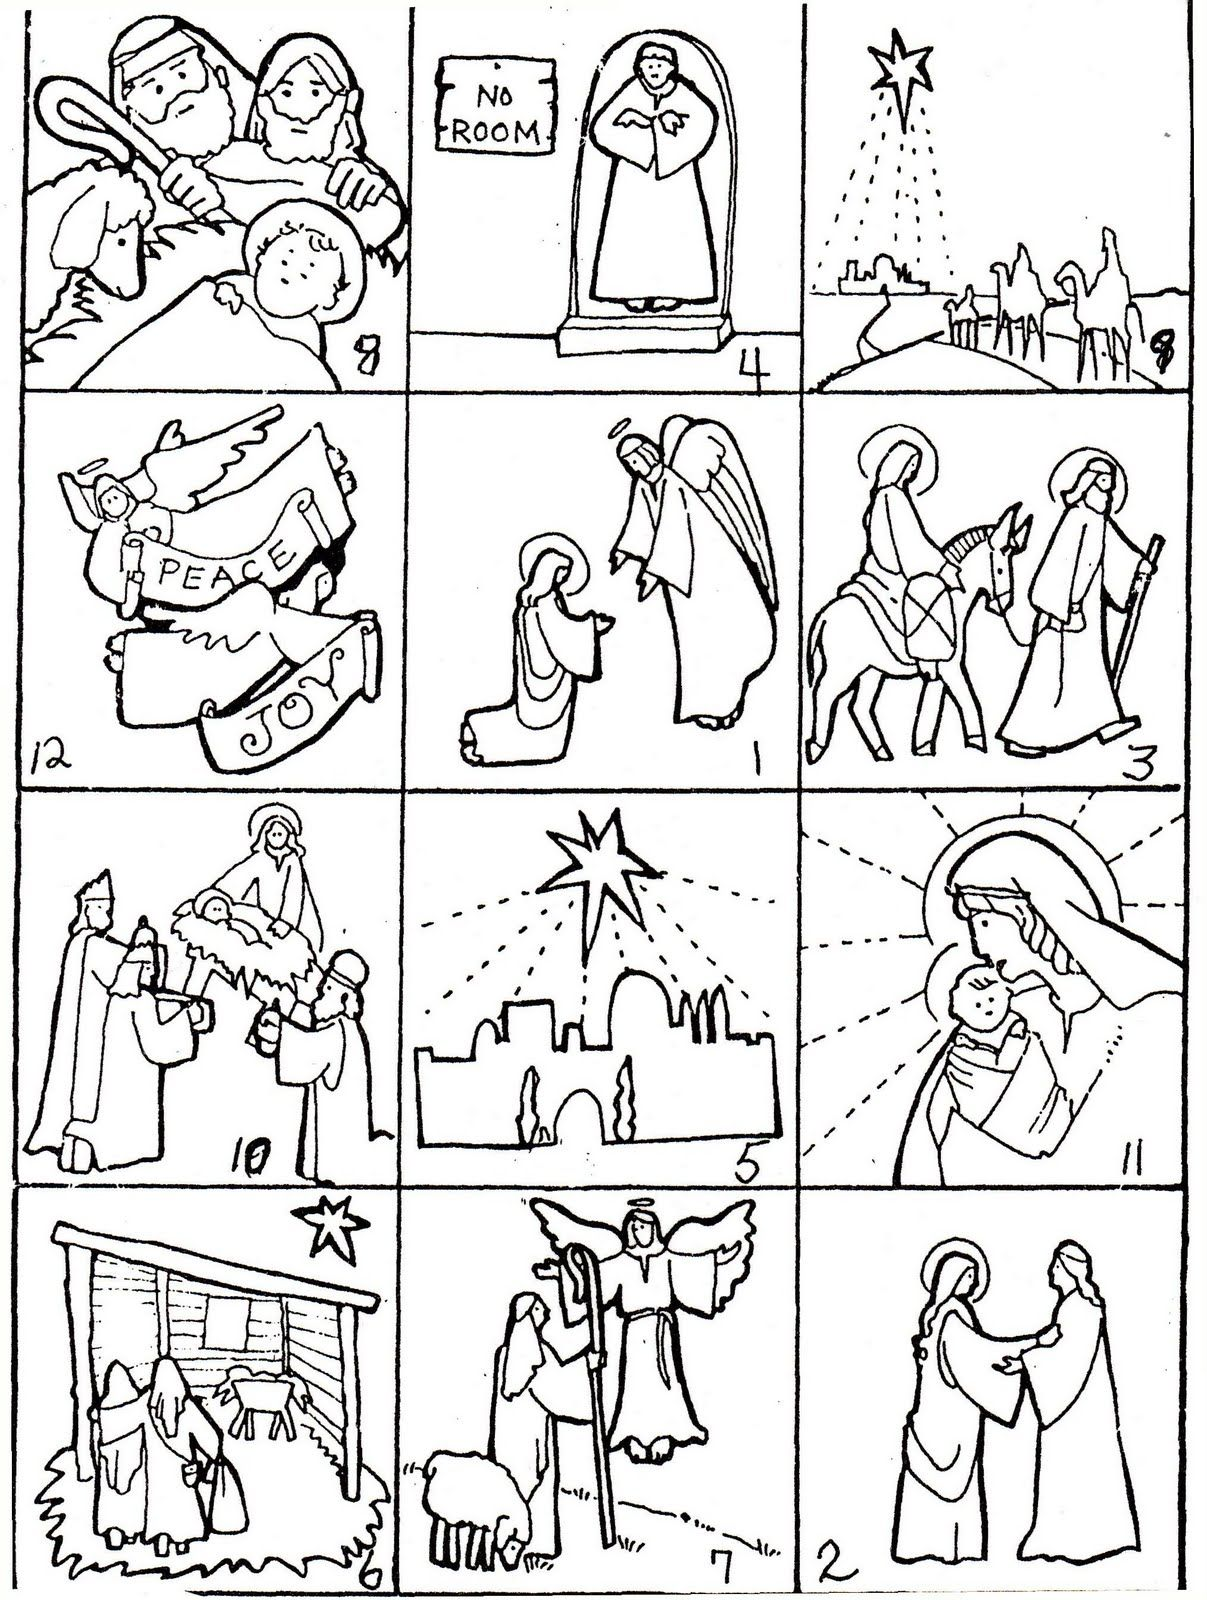 It's just a graphic of Ambitious Printable Nativity Story